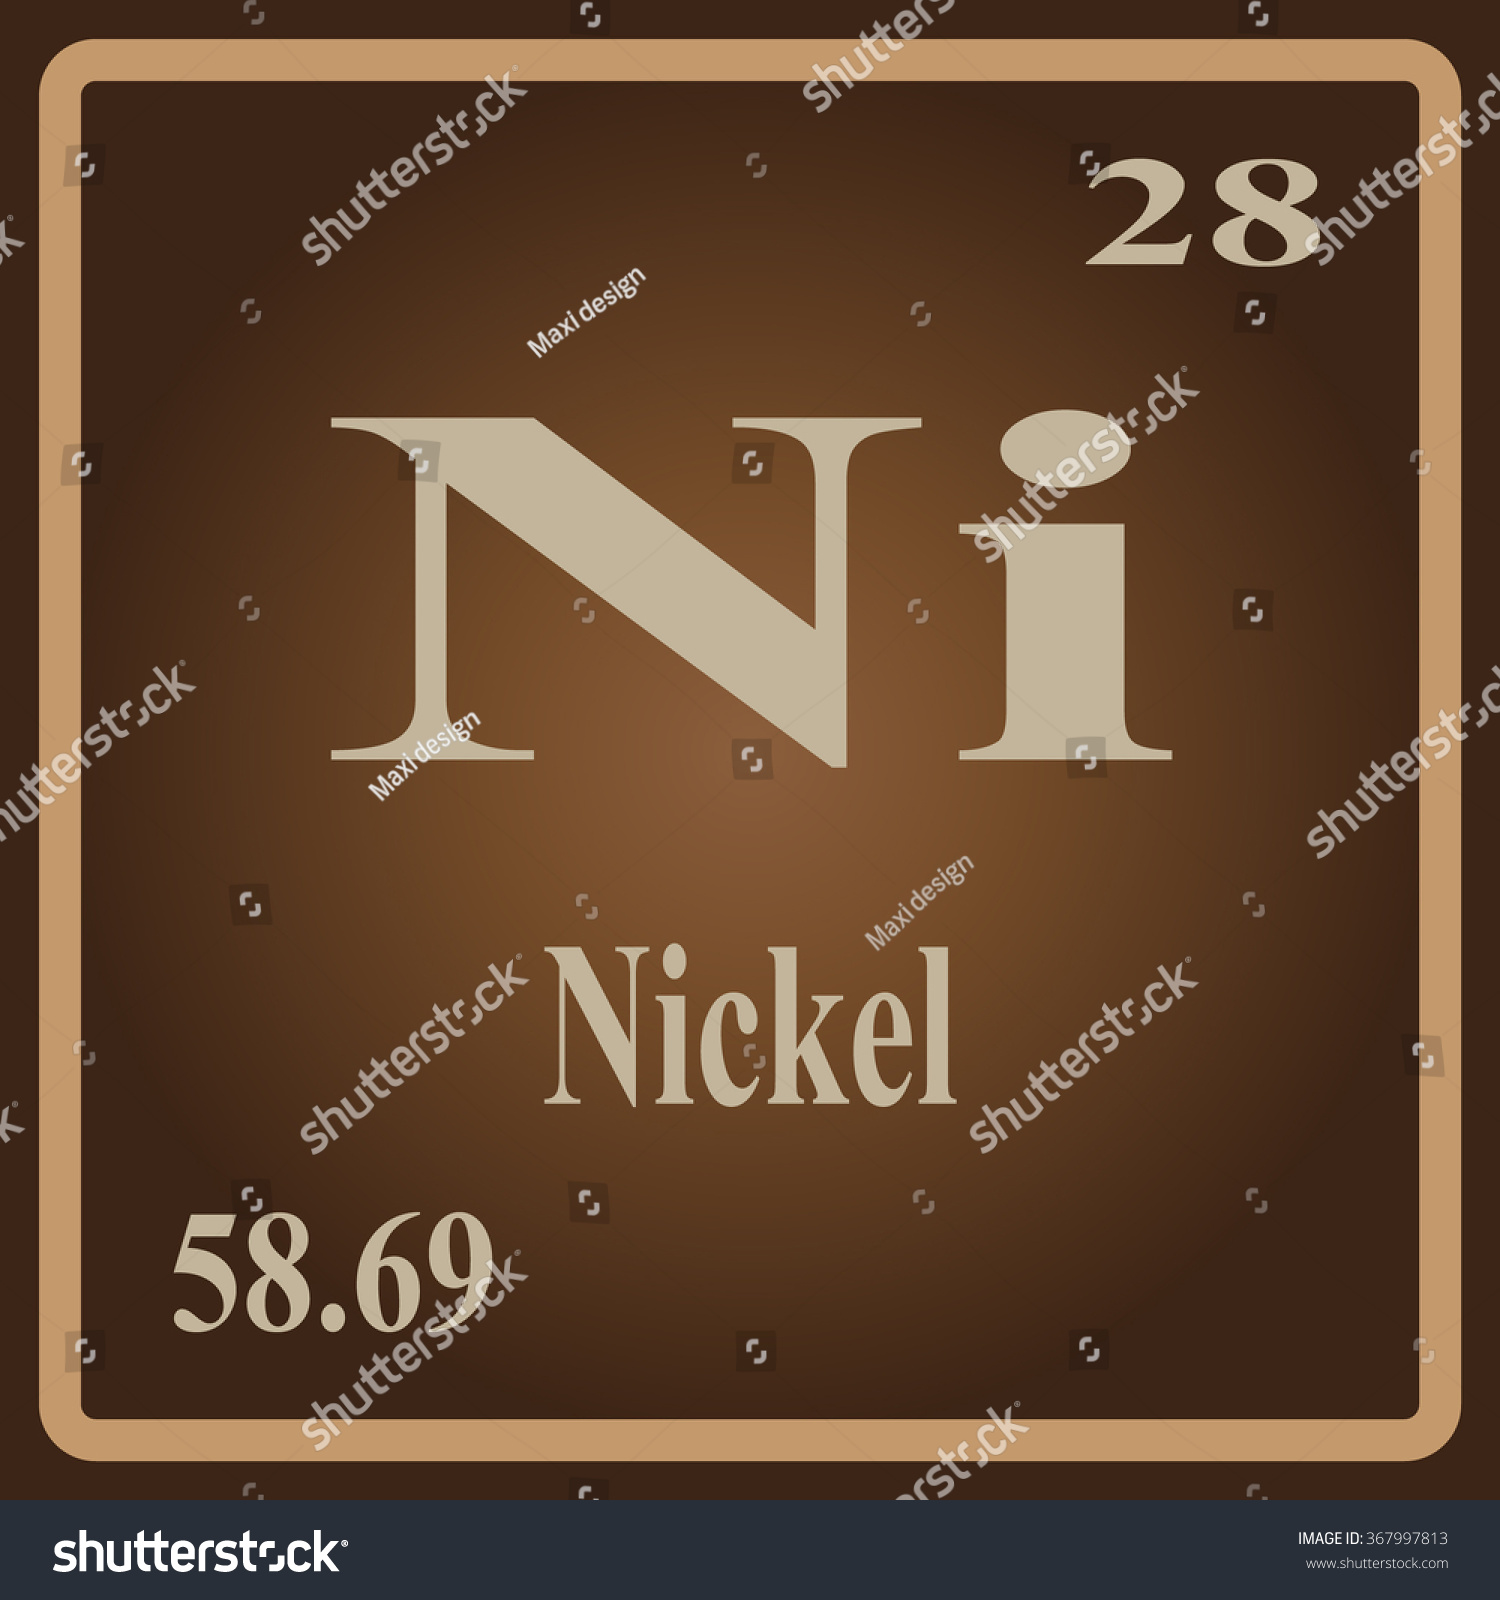 Nickel periodic table facts gallery periodic table images periodic table symbol for nickel images periodic table images what is the symbol for nickel on gamestrikefo Gallery